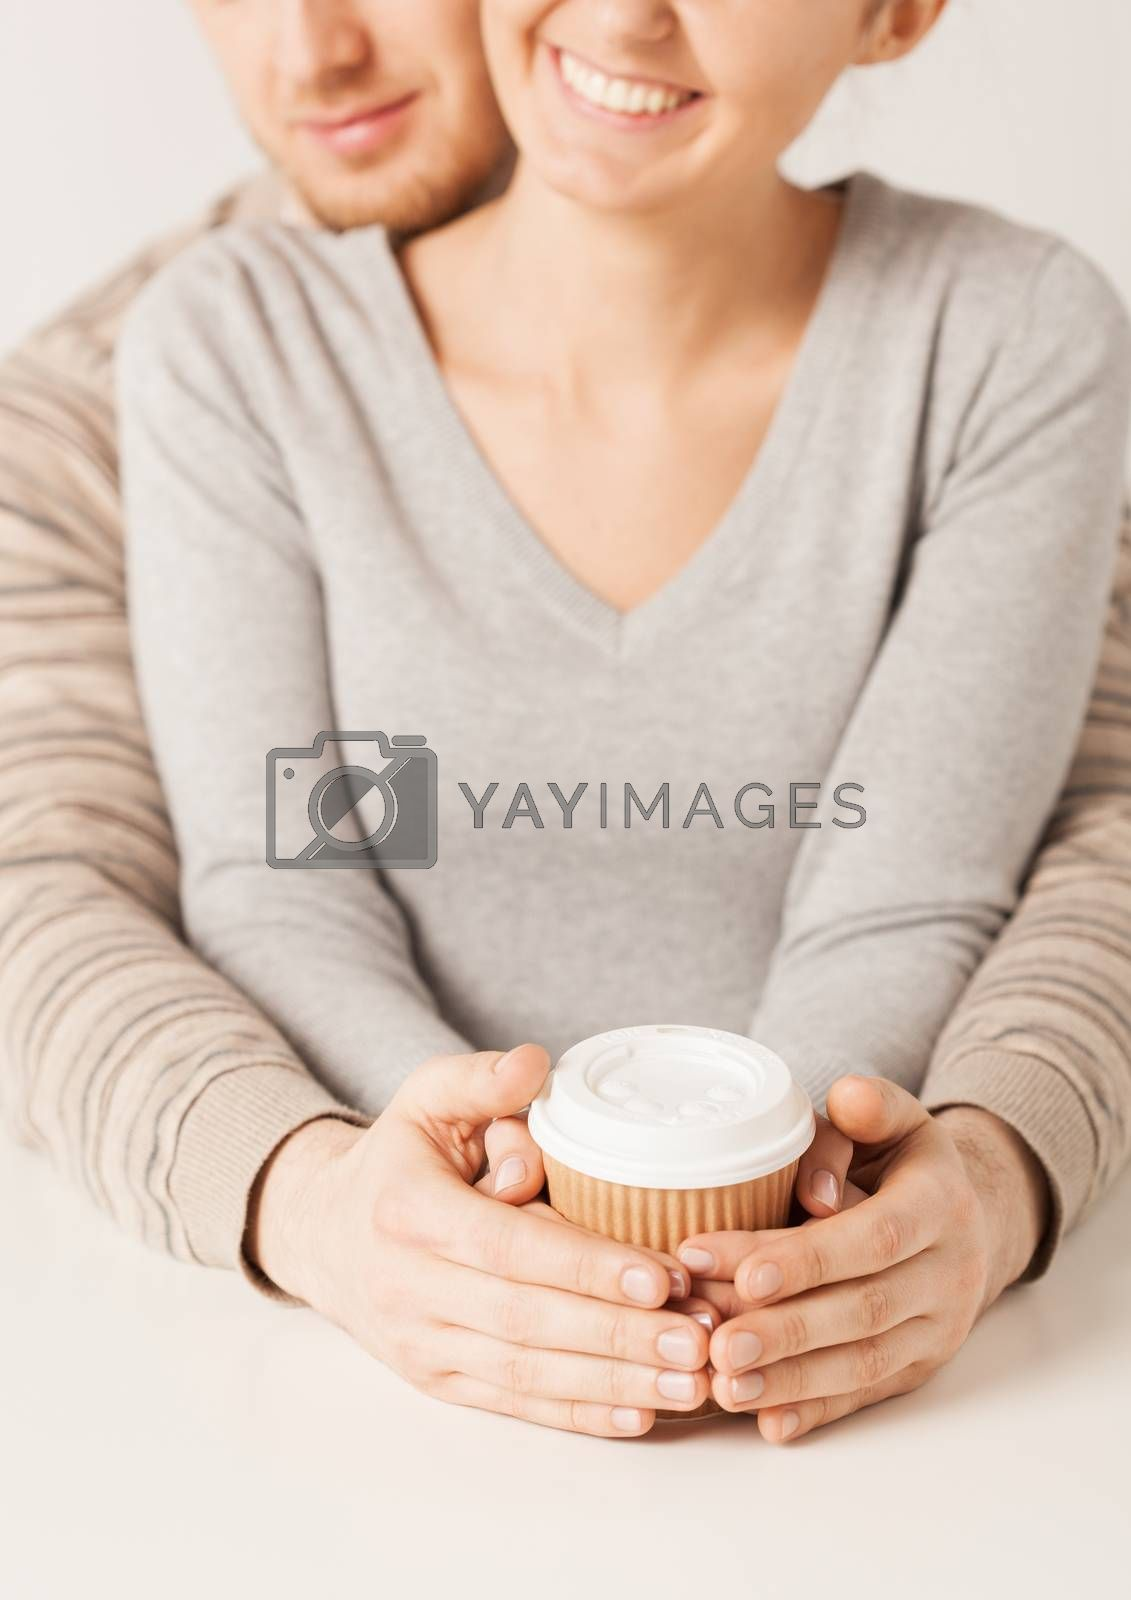 woman and man with take away coffee cup by dolgachov